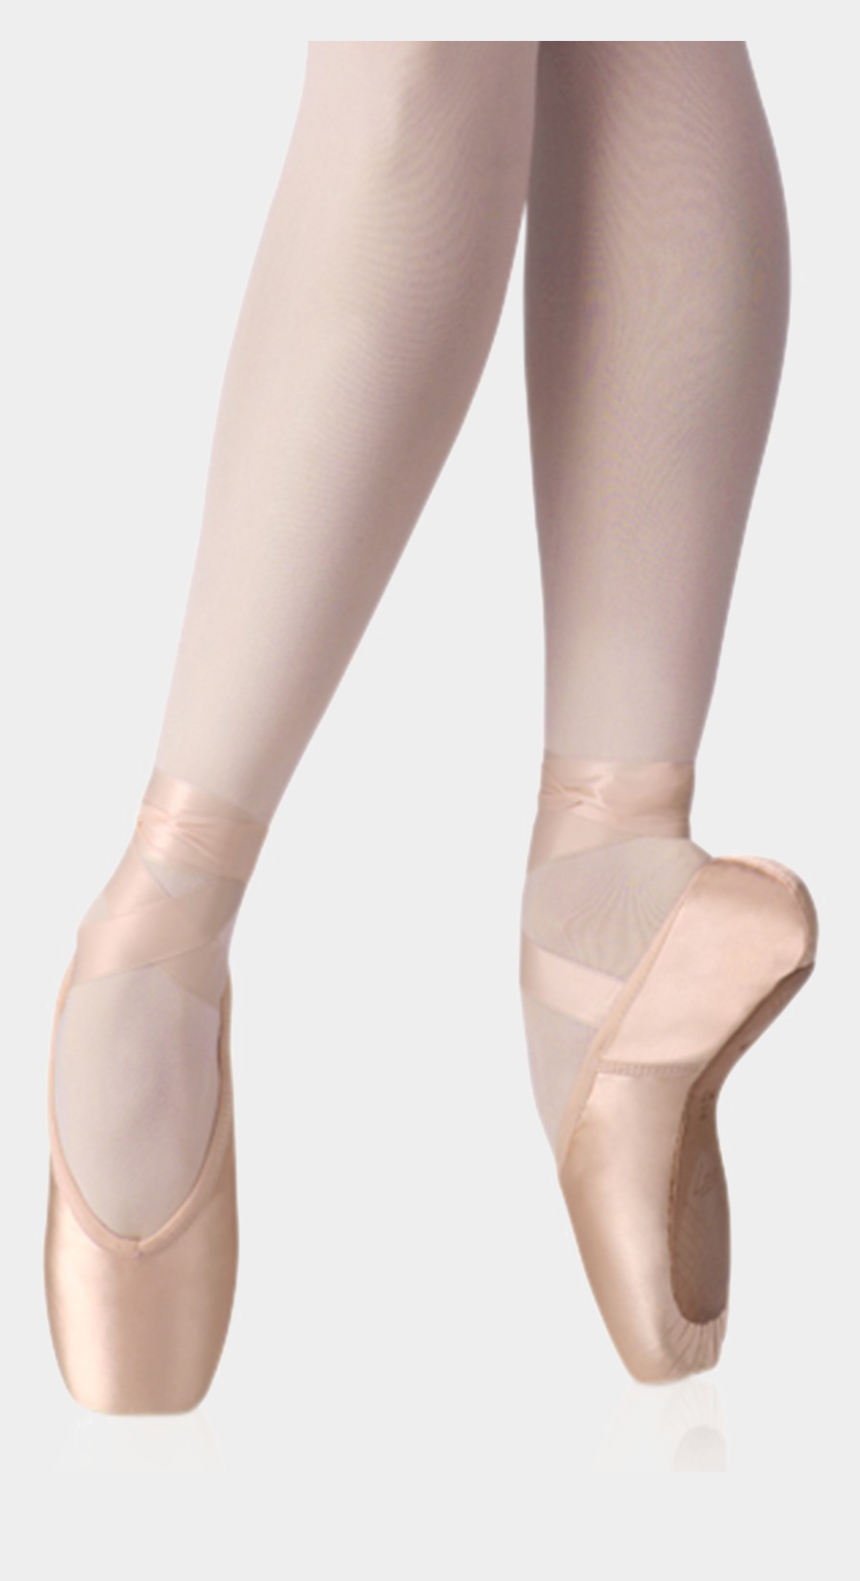 ballerina shoes clipart, Cartoons - Ballet Shoes Png - Pointe Shoes With Legs